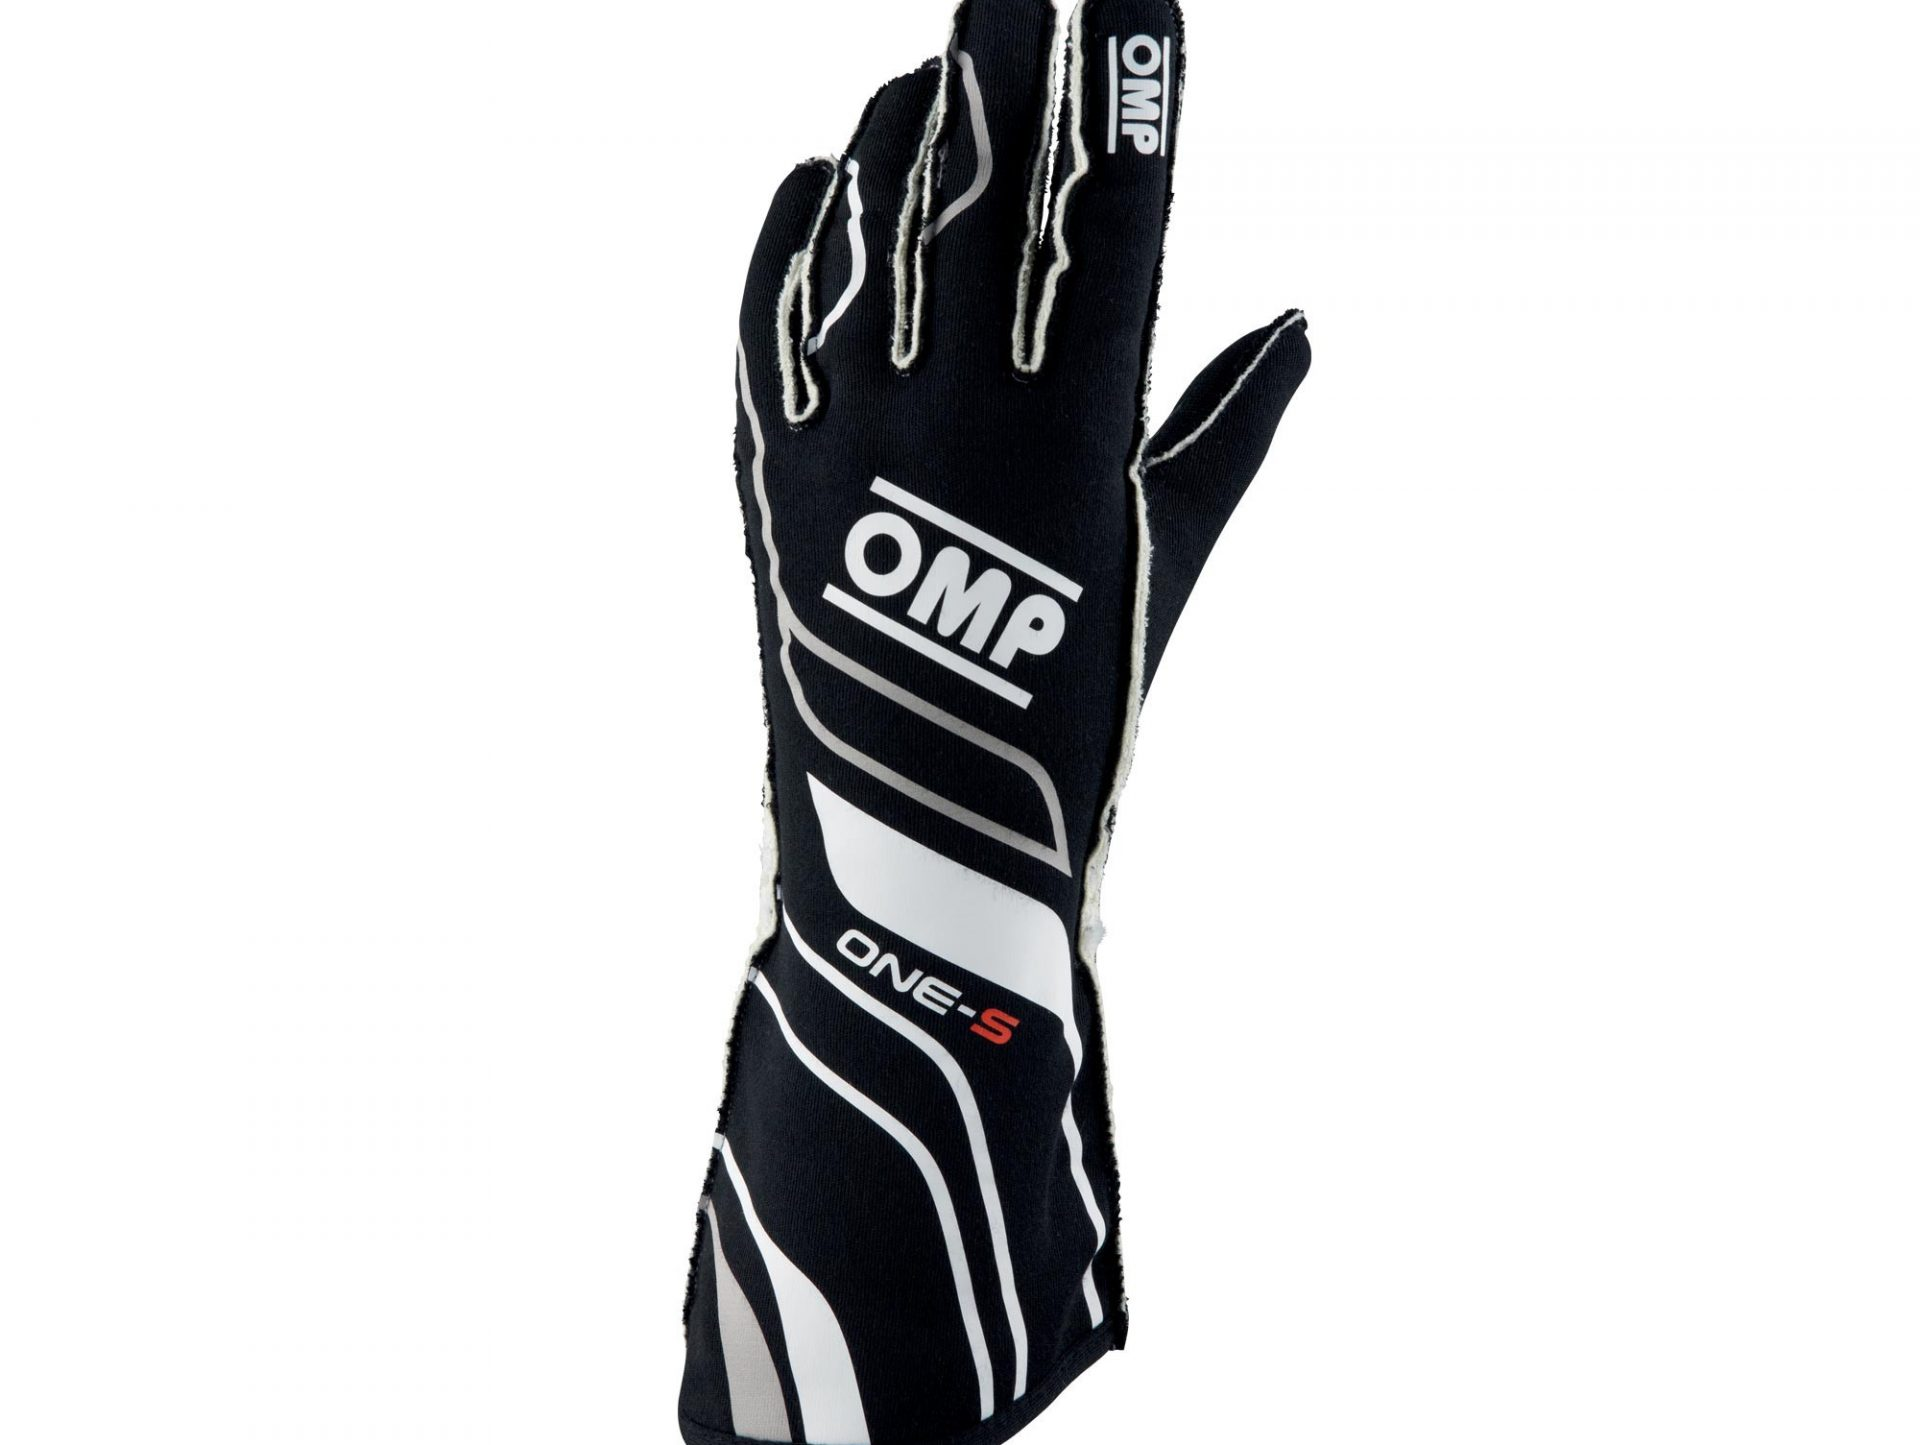 Нов продукт: OMP One-S My2020, FIA Gloves